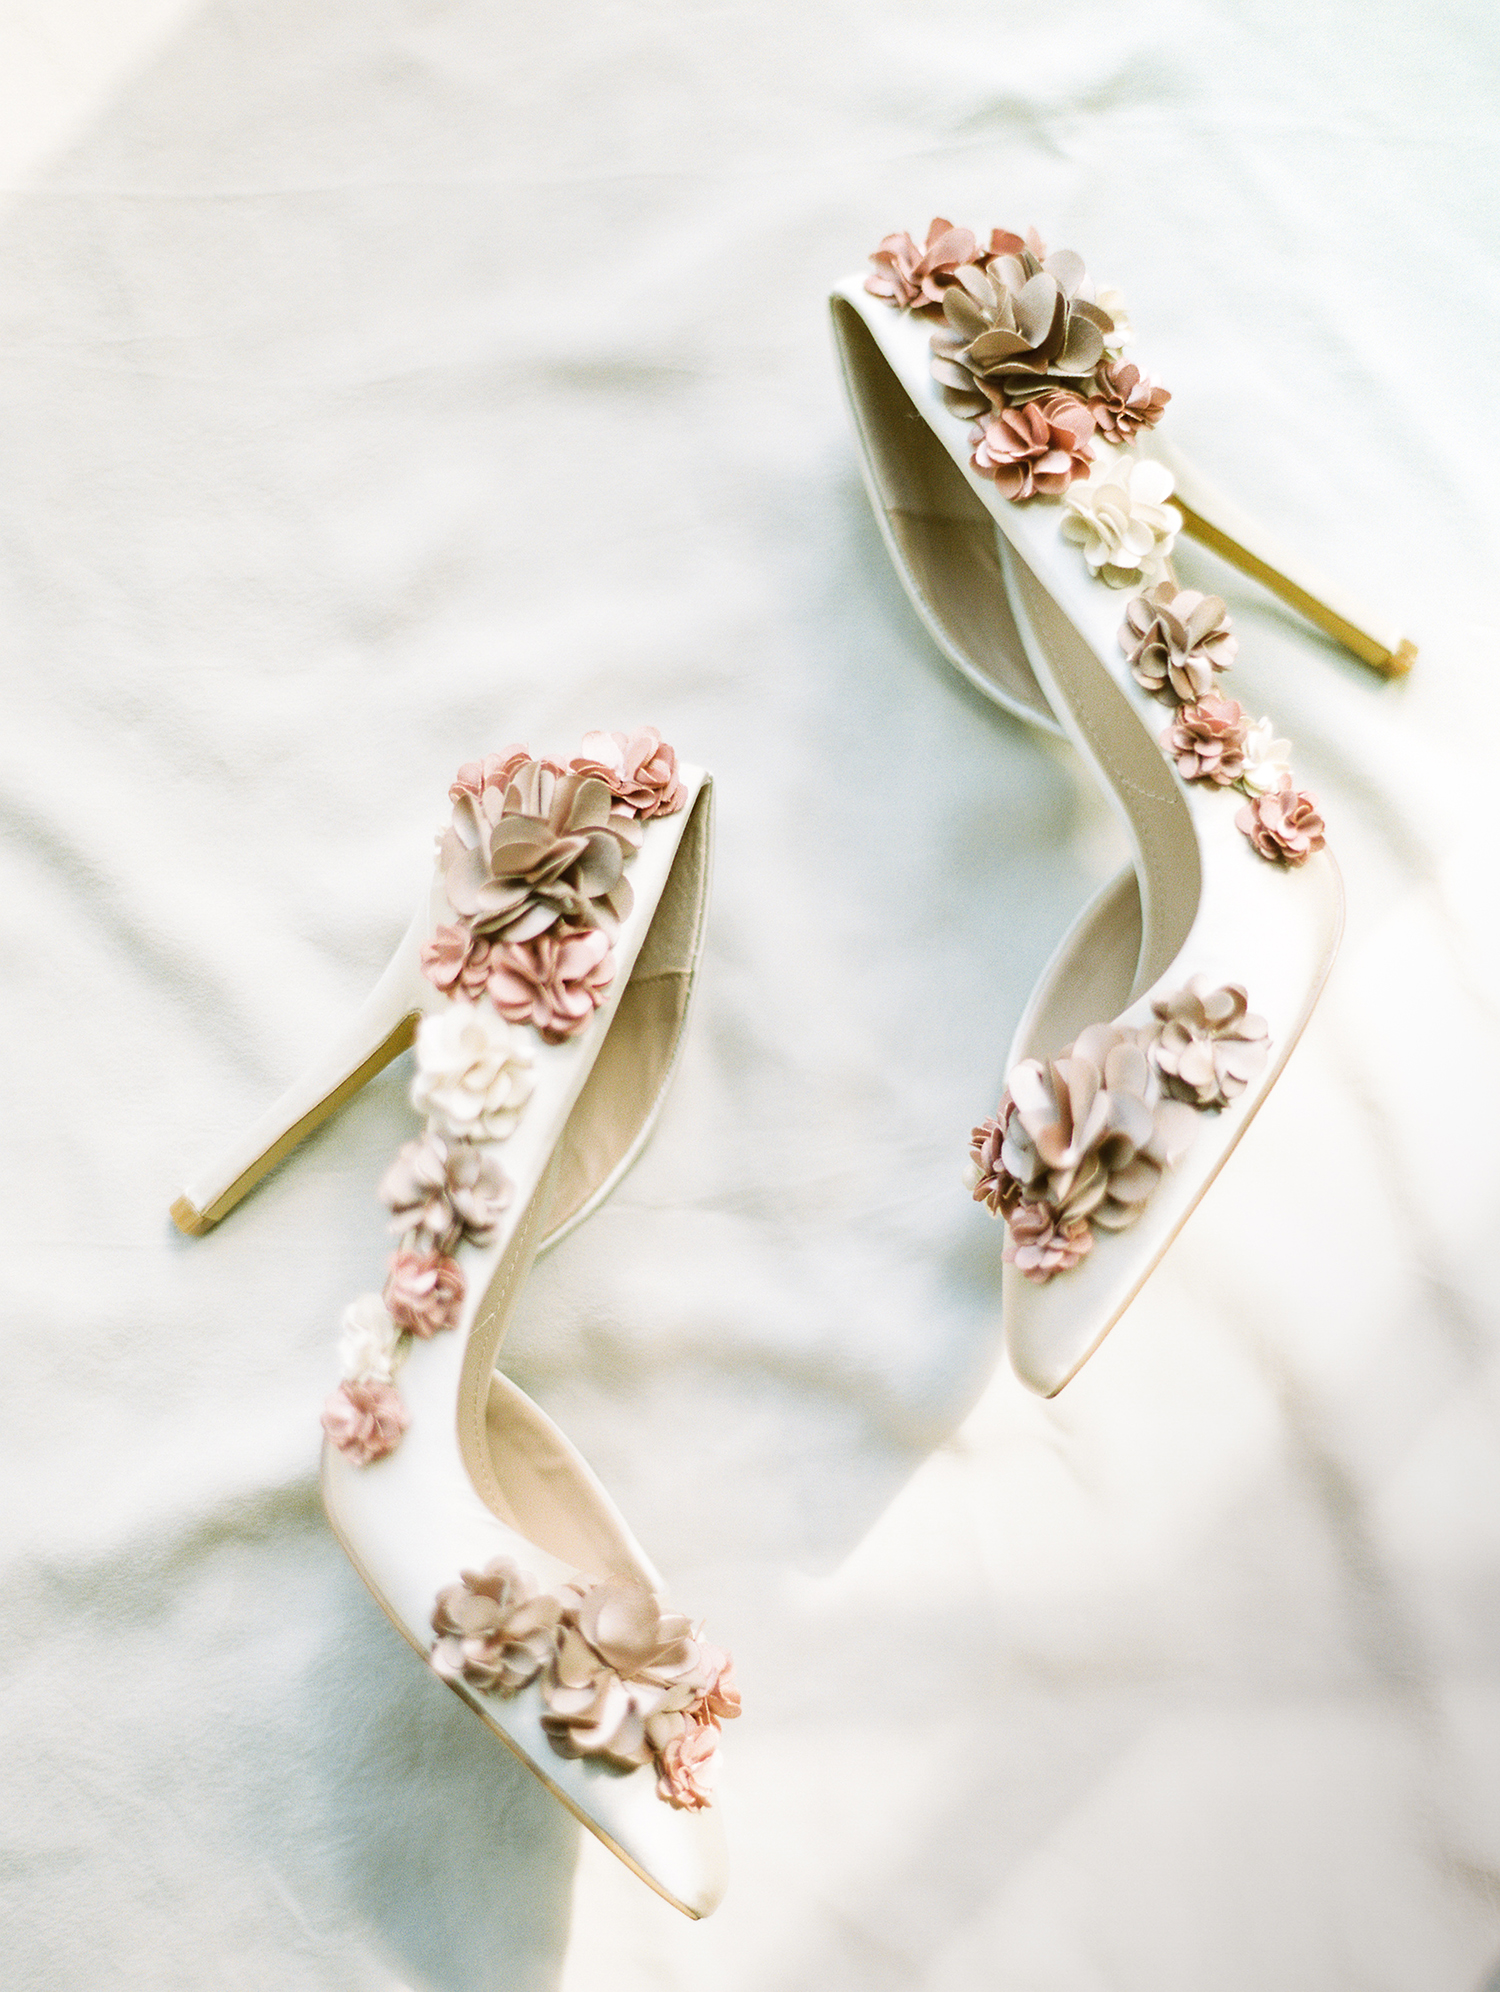 Does the Style of Your Wedding Shoes Matter If You Can't See Them Under Your Dress?